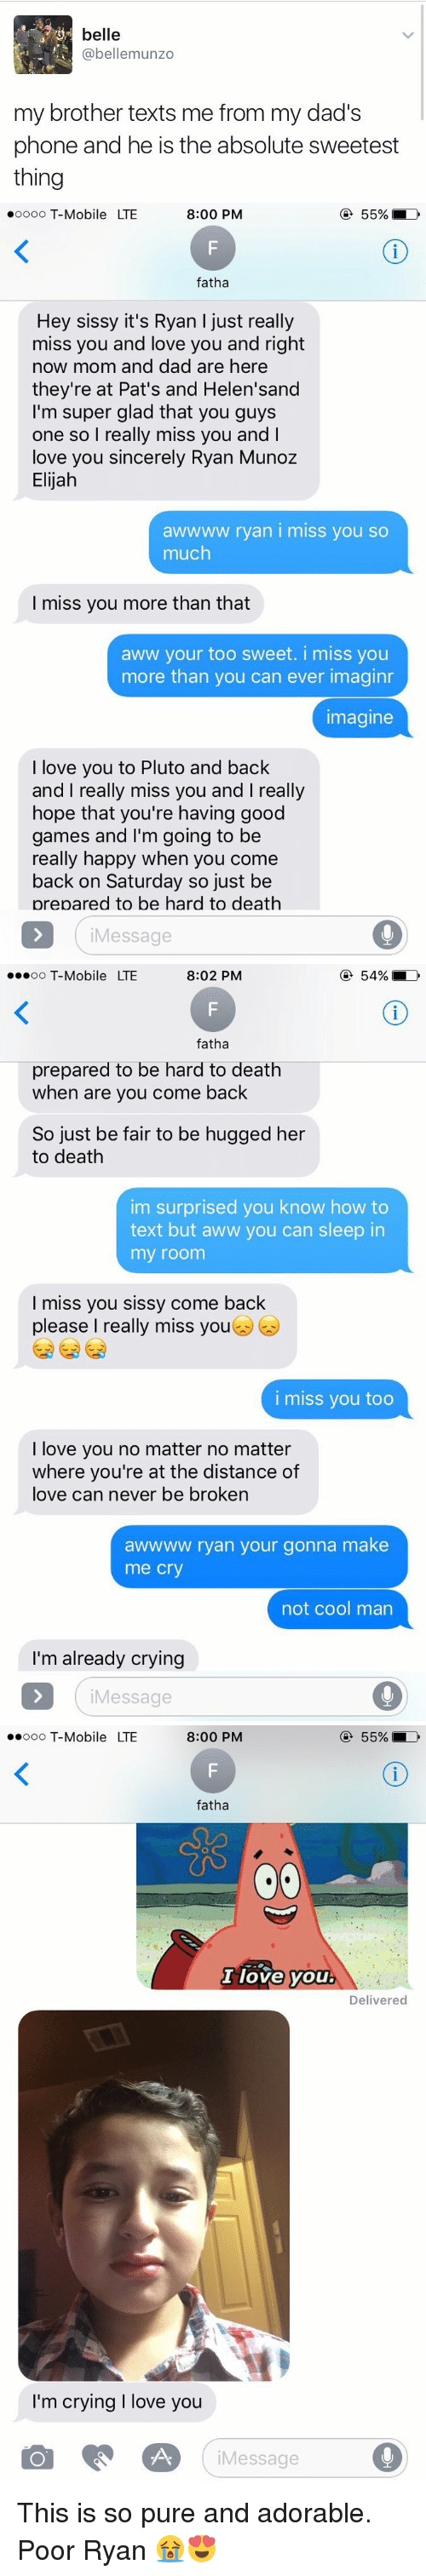 i miss you too